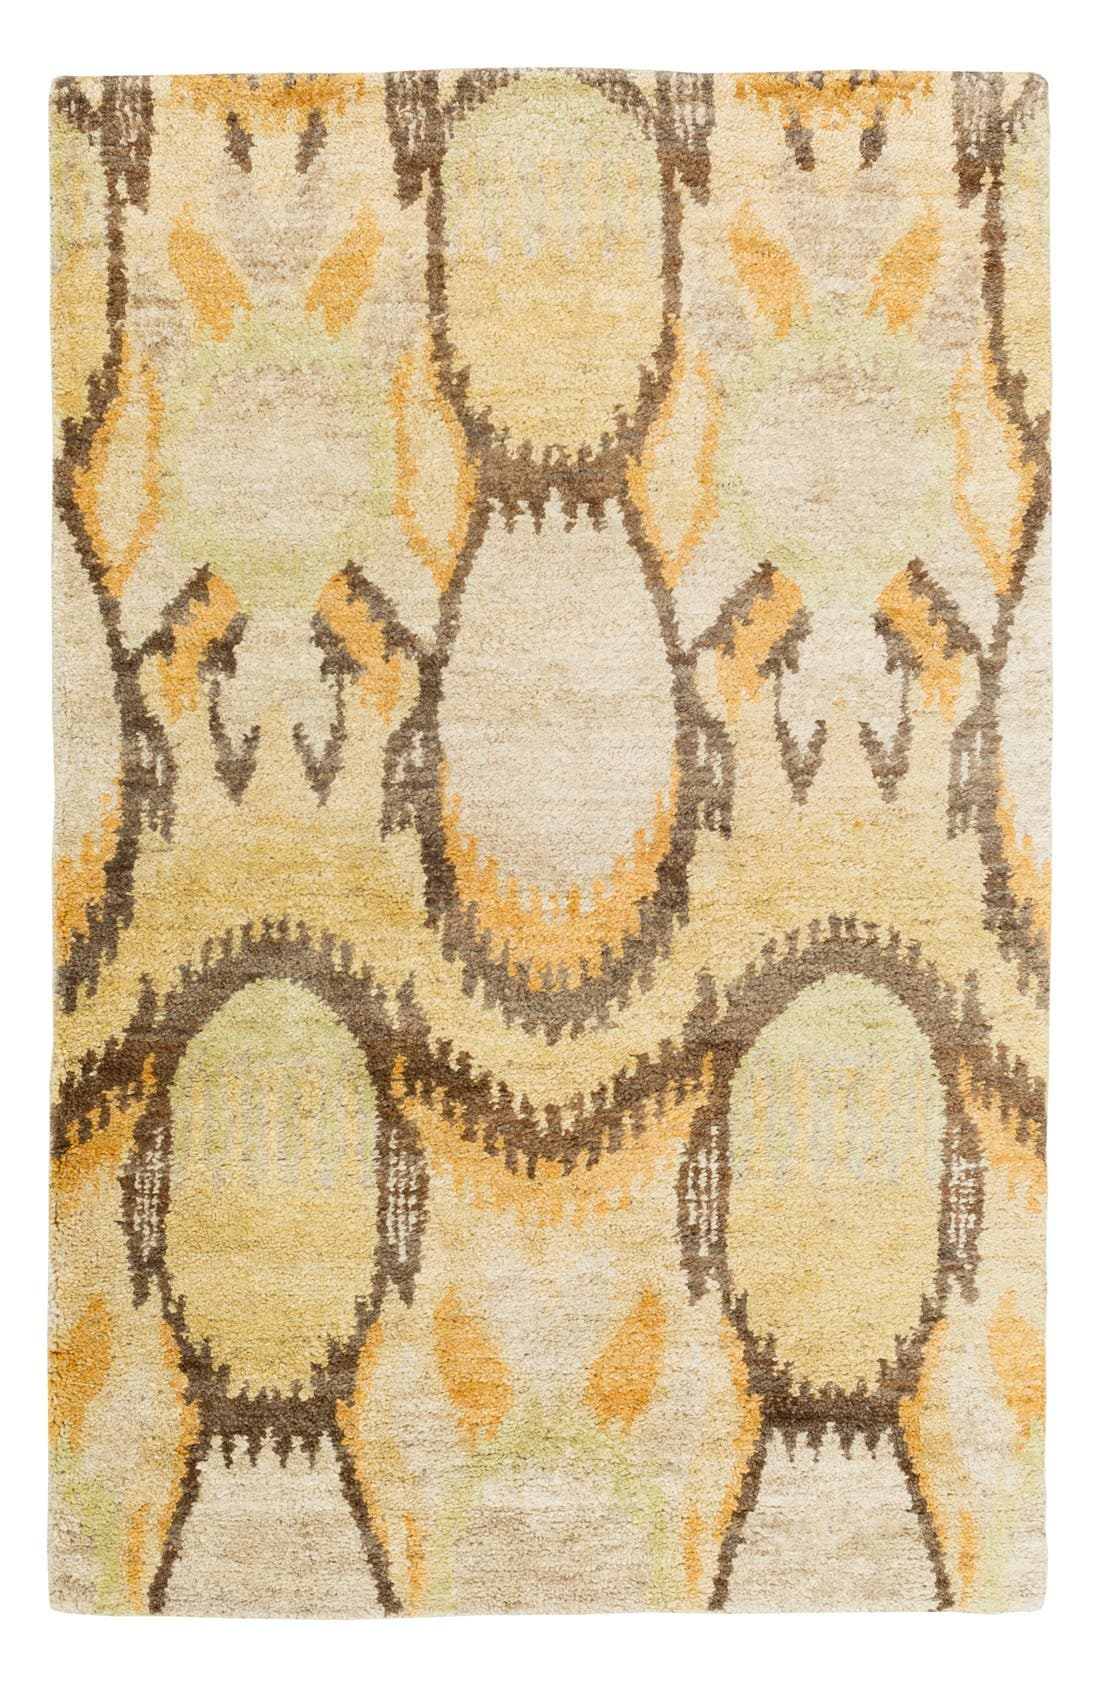 'Scarborough' Jute Rug,                         Main,                         color, Gold/ Beige/ Olive